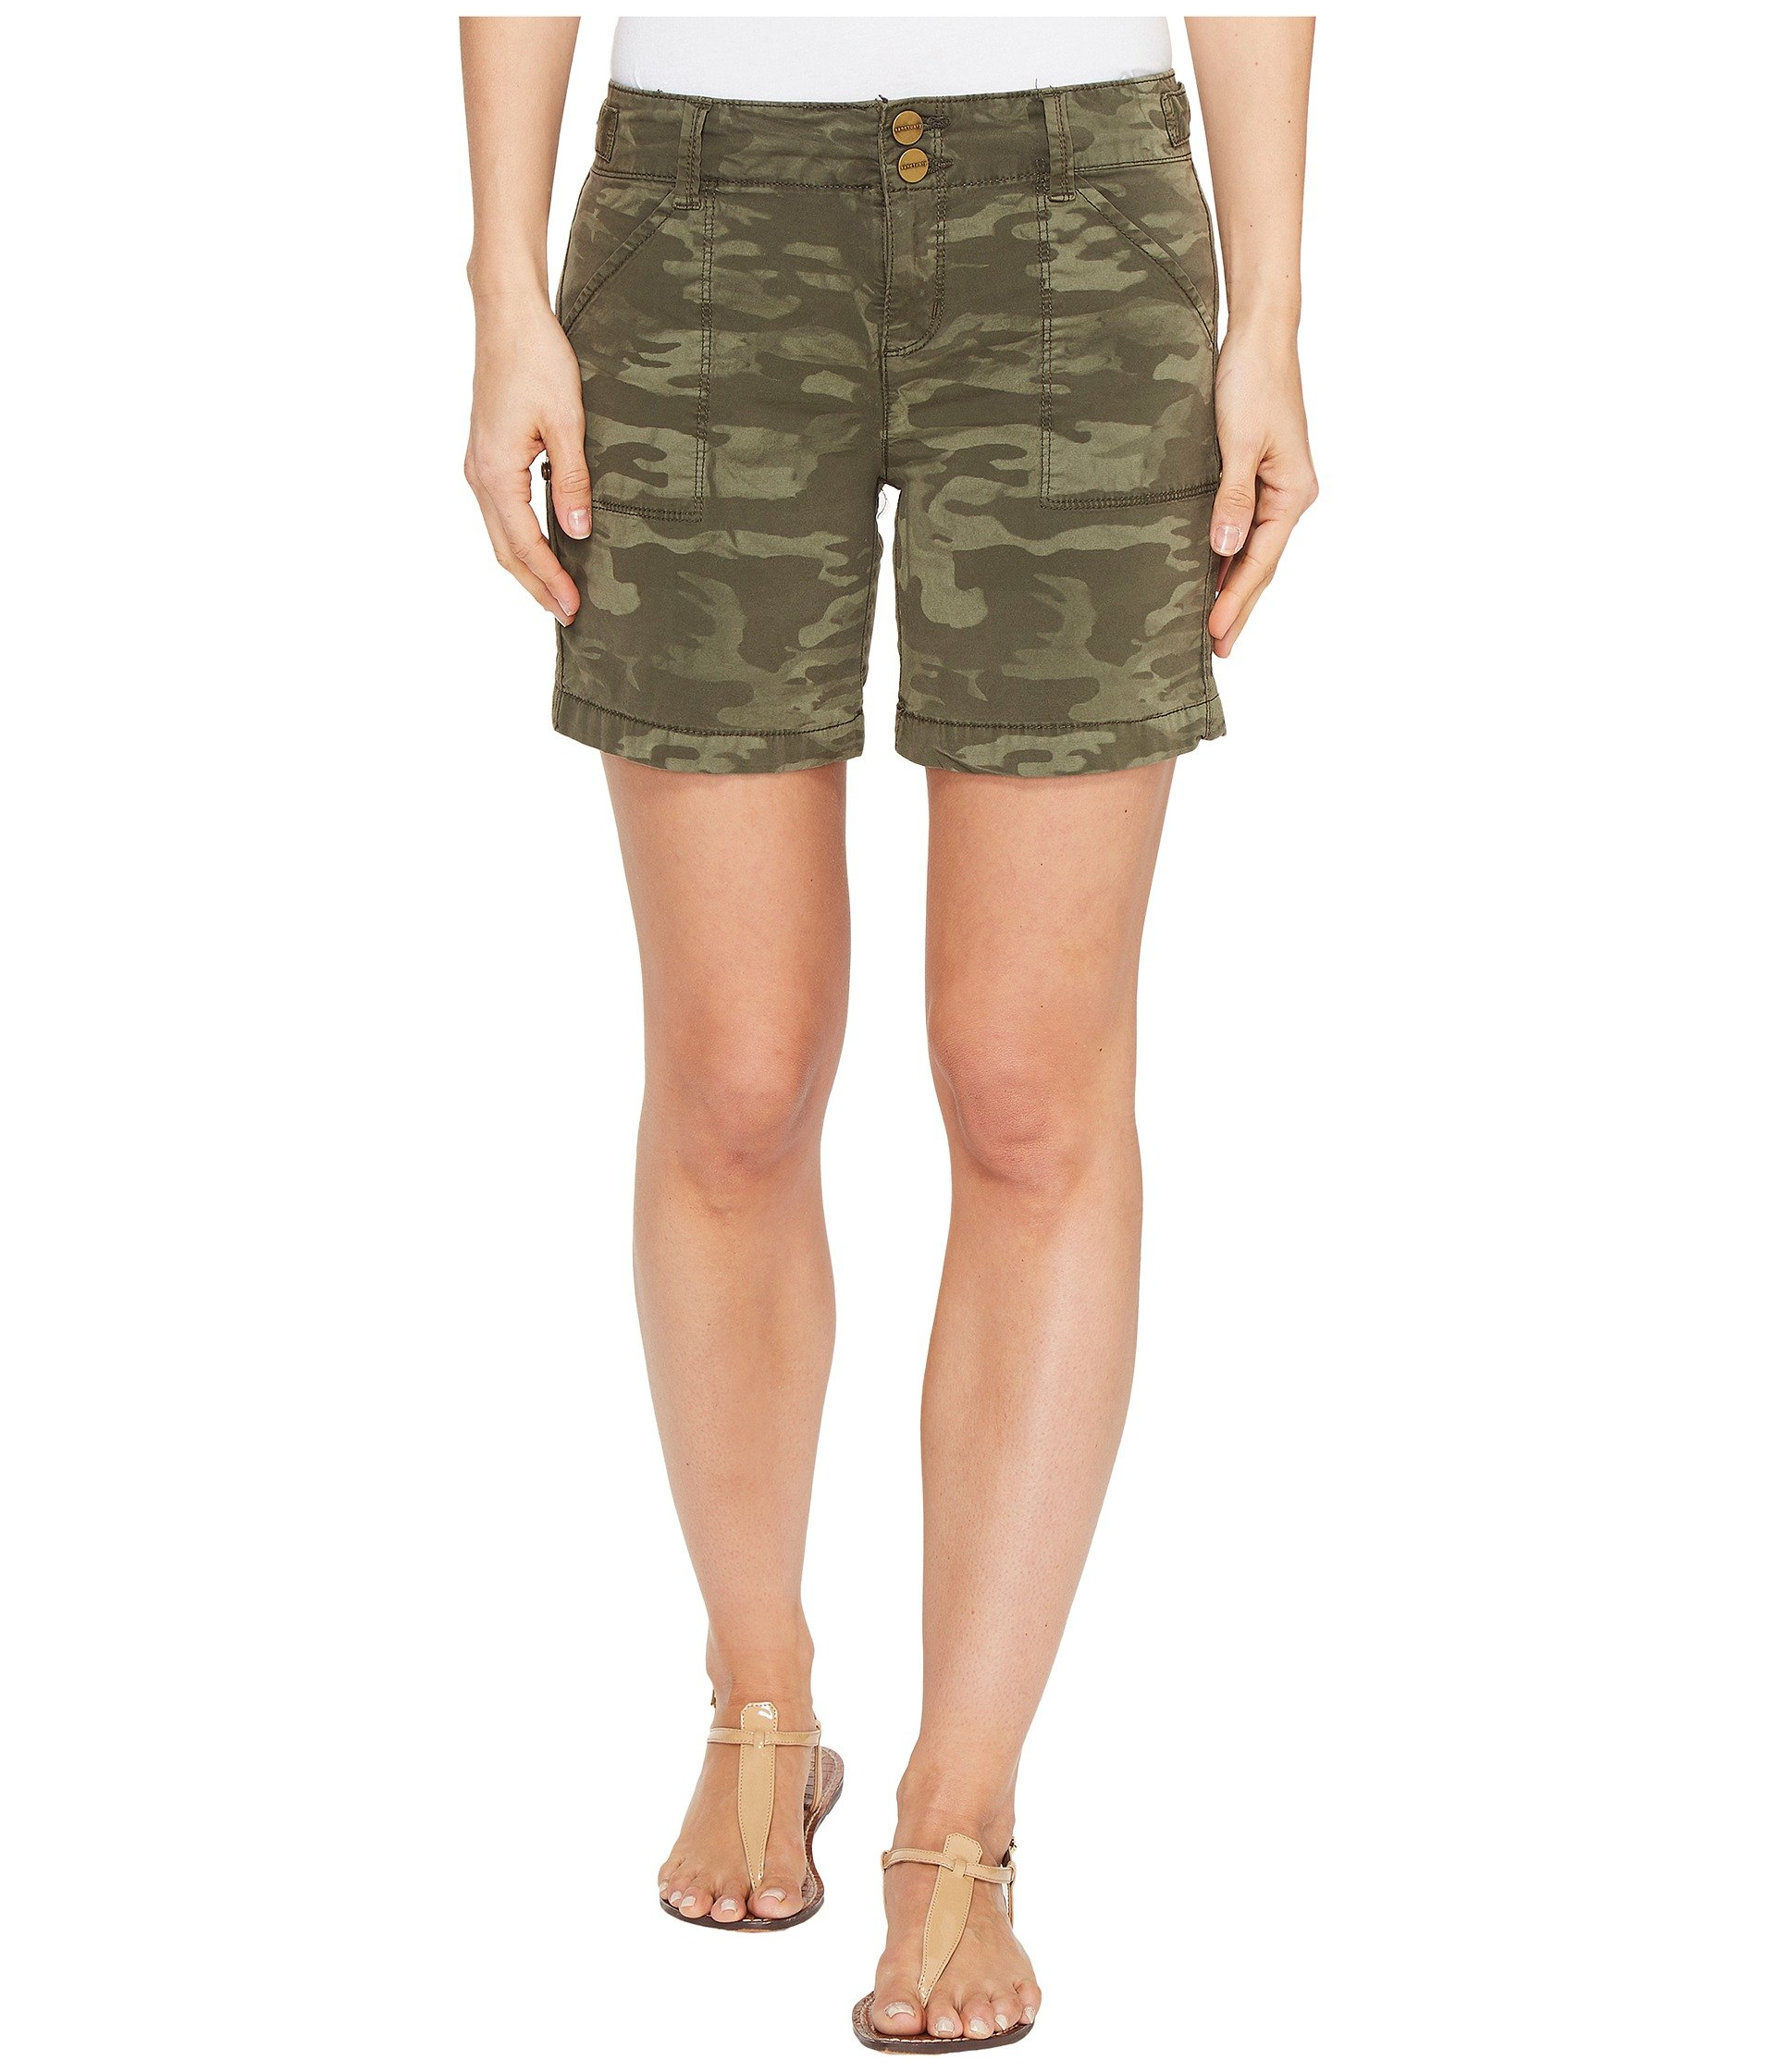 Habitat Shorts, Safari Green Camo